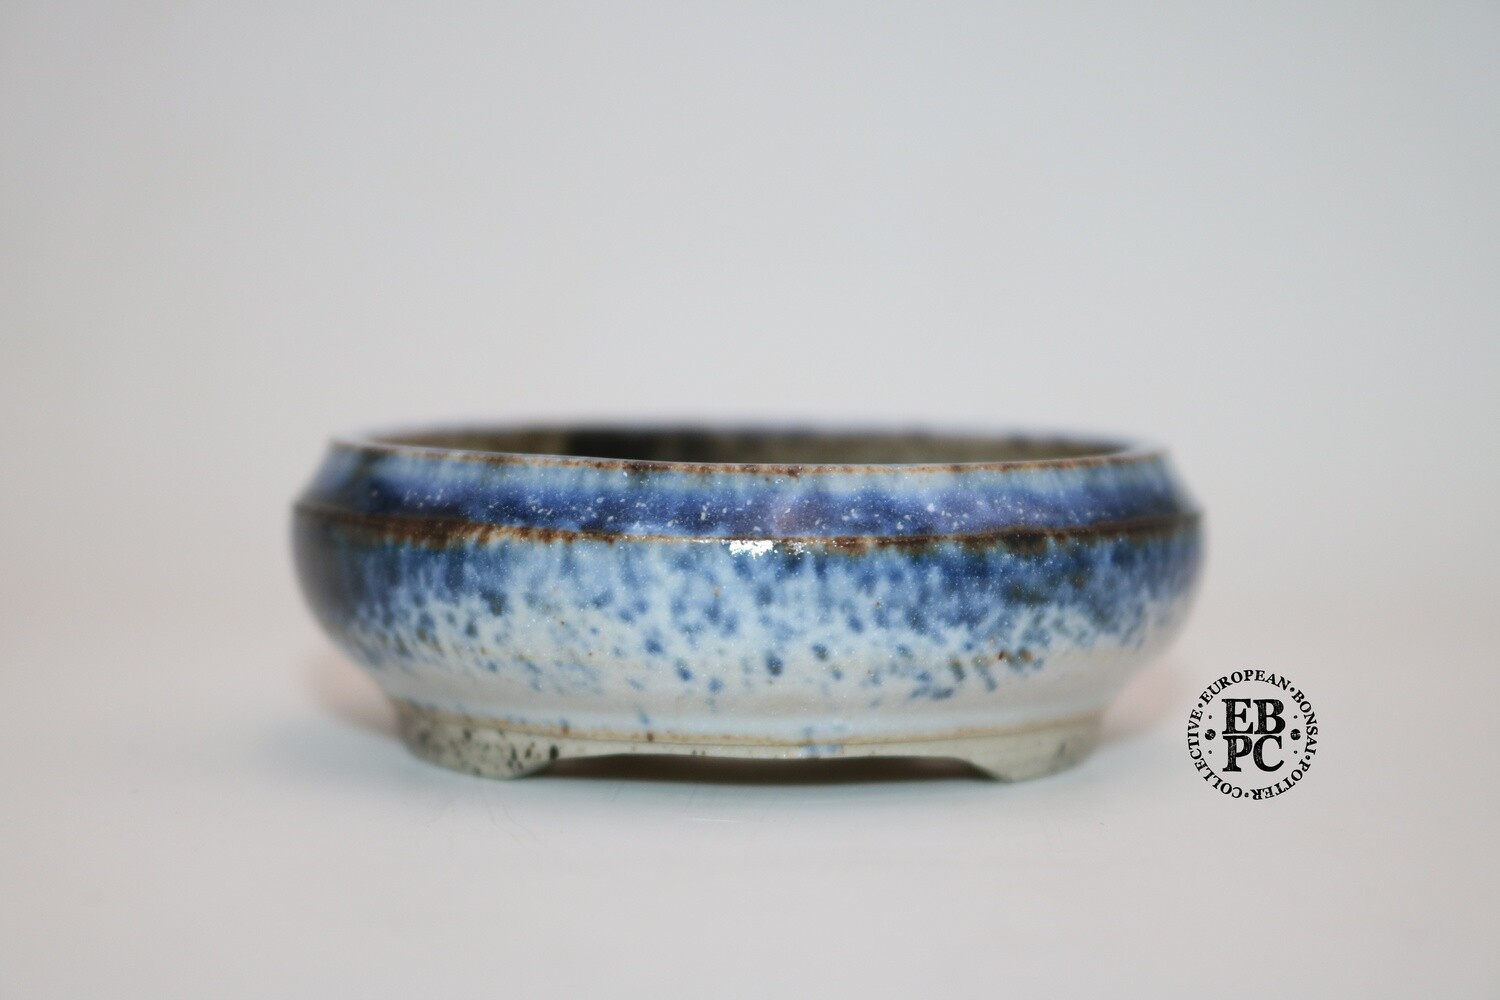 Reserved - PAS Pots - 10.9cm  Round; Shohin / Accent pot; Hand Thrown; Blue & Tan/Light Brown Glaze; Detailed foot ring; Patricia